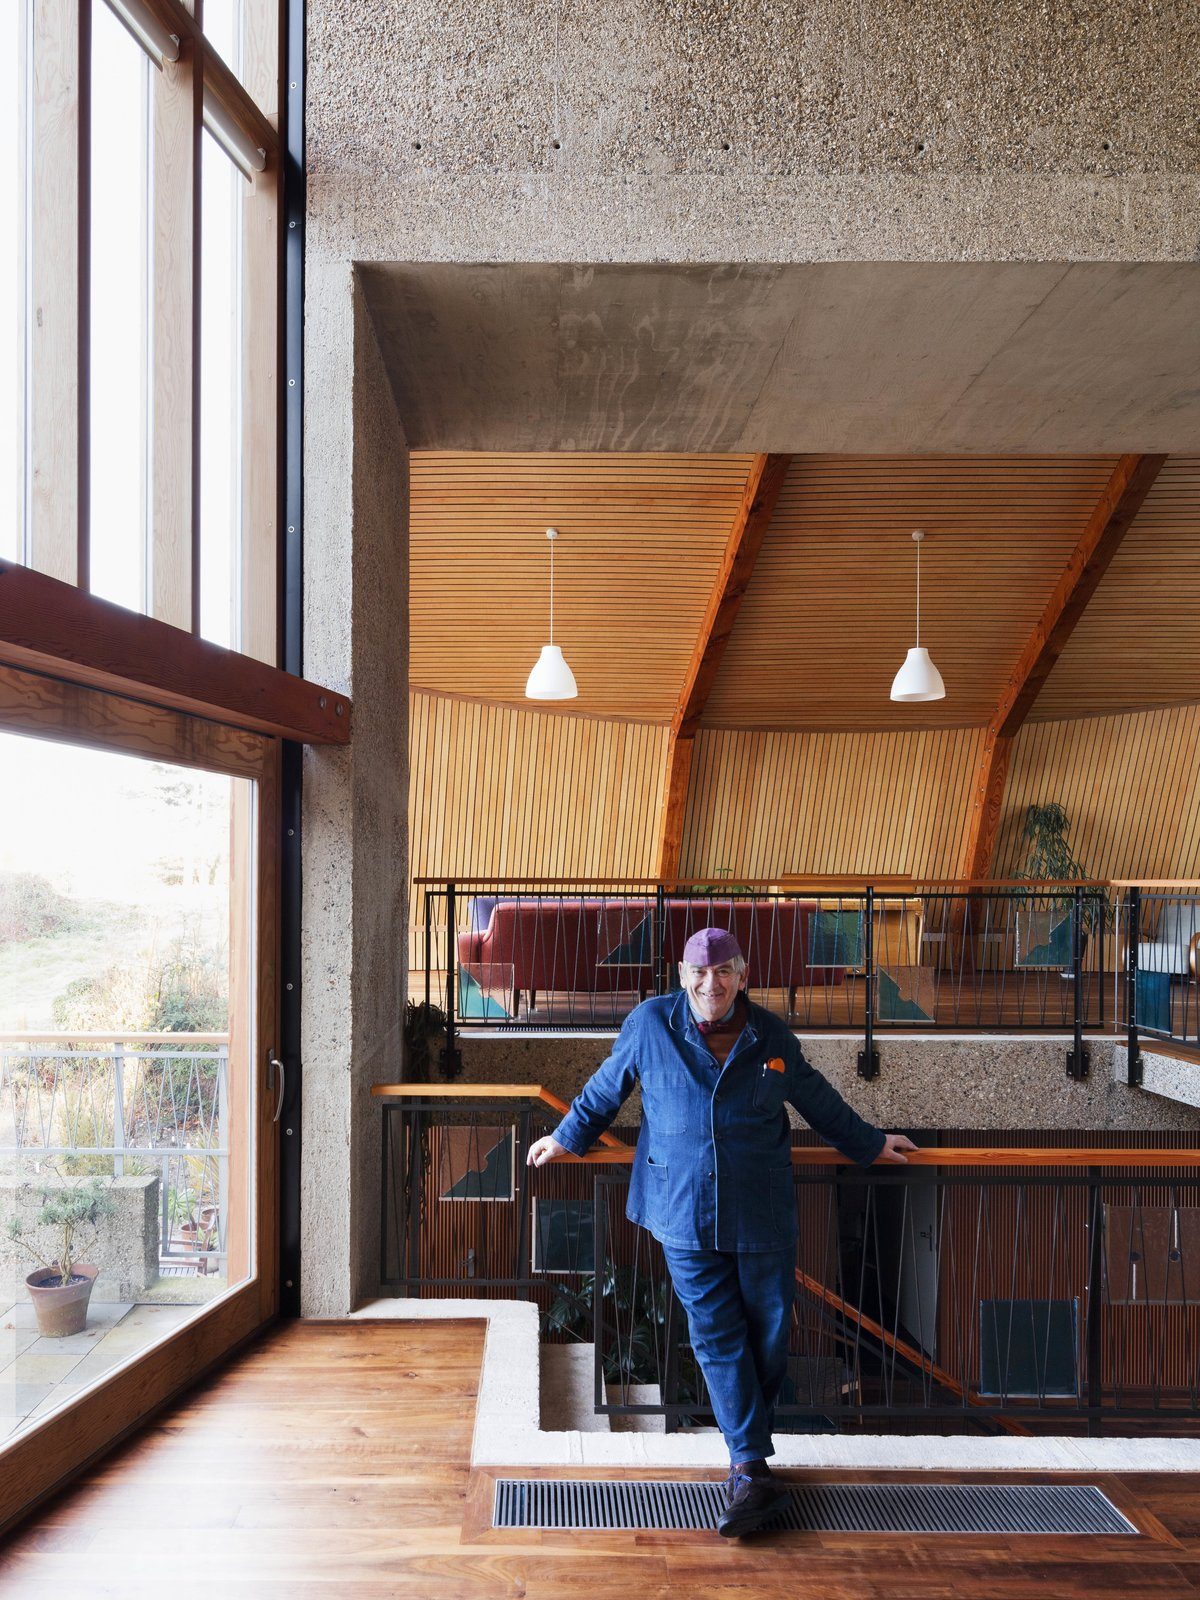 Living Room, Dark Hardwood Floor, and Pendant Lighting  The Boathouse from Resembling the Inverted Hull of a Ship, an English Guest House Pays Homage to the Harbor